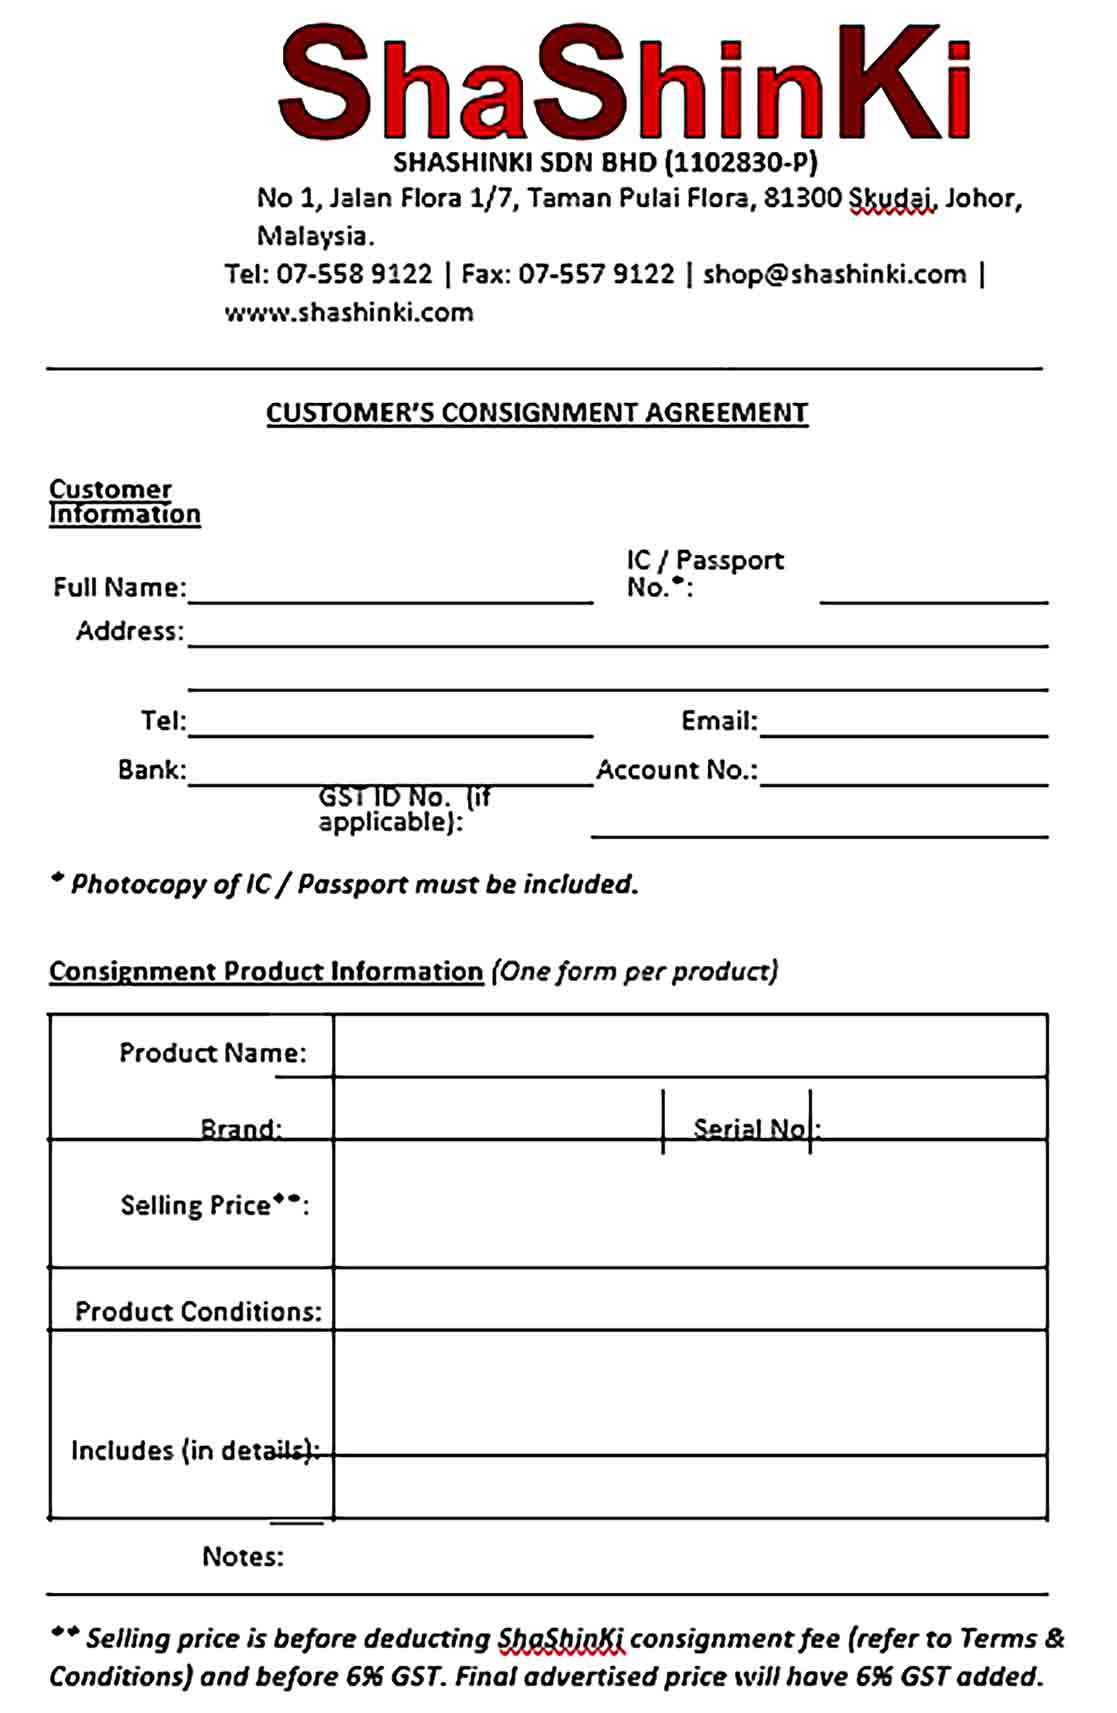 Sample Customers Consignment Agreement